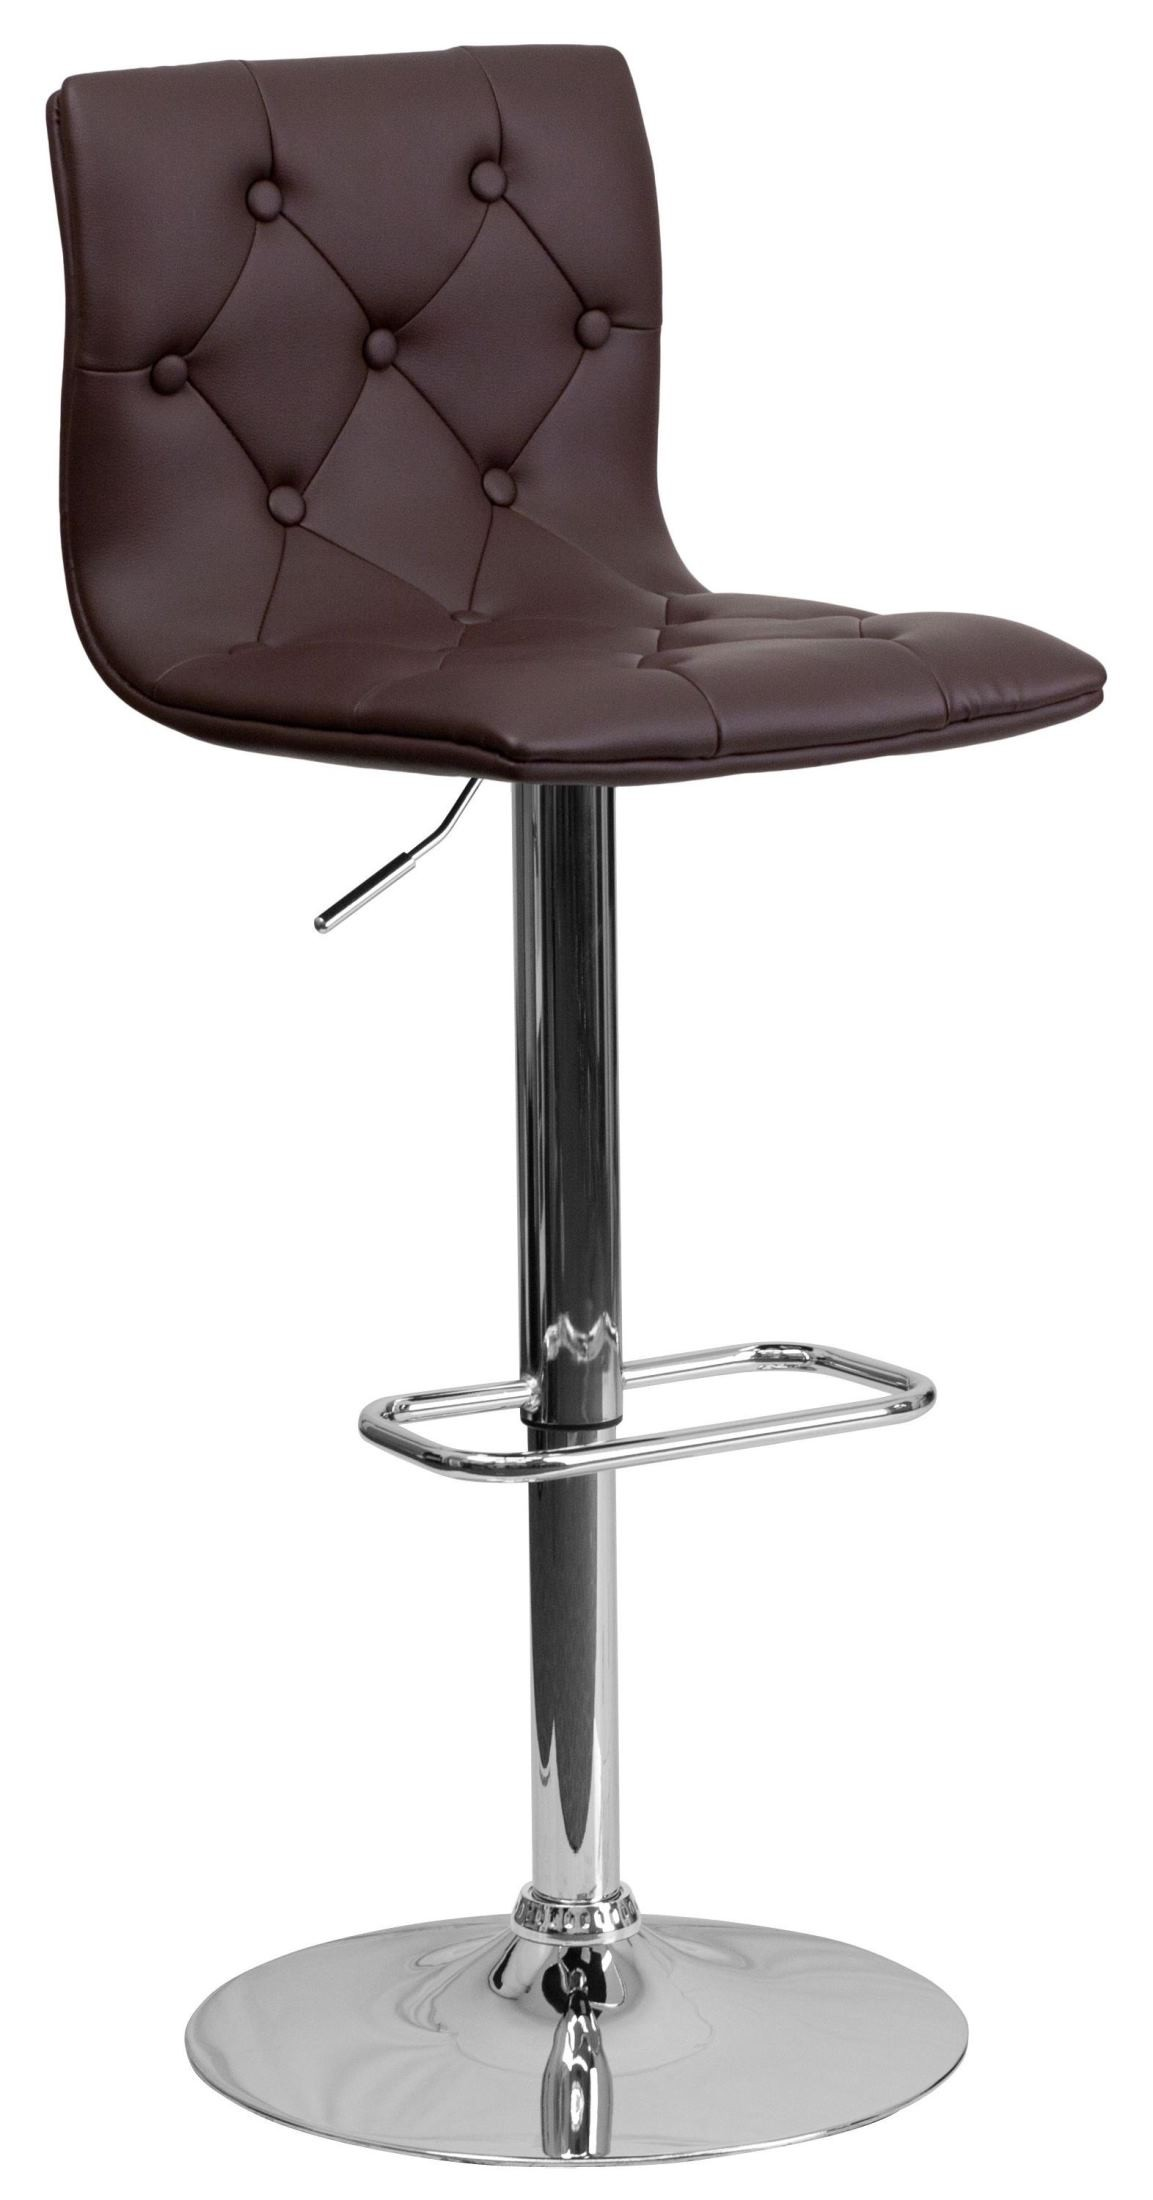 Brown Adjustable Bar Stool Tufted Brown Adjustable Height Bar Stool From Renegade